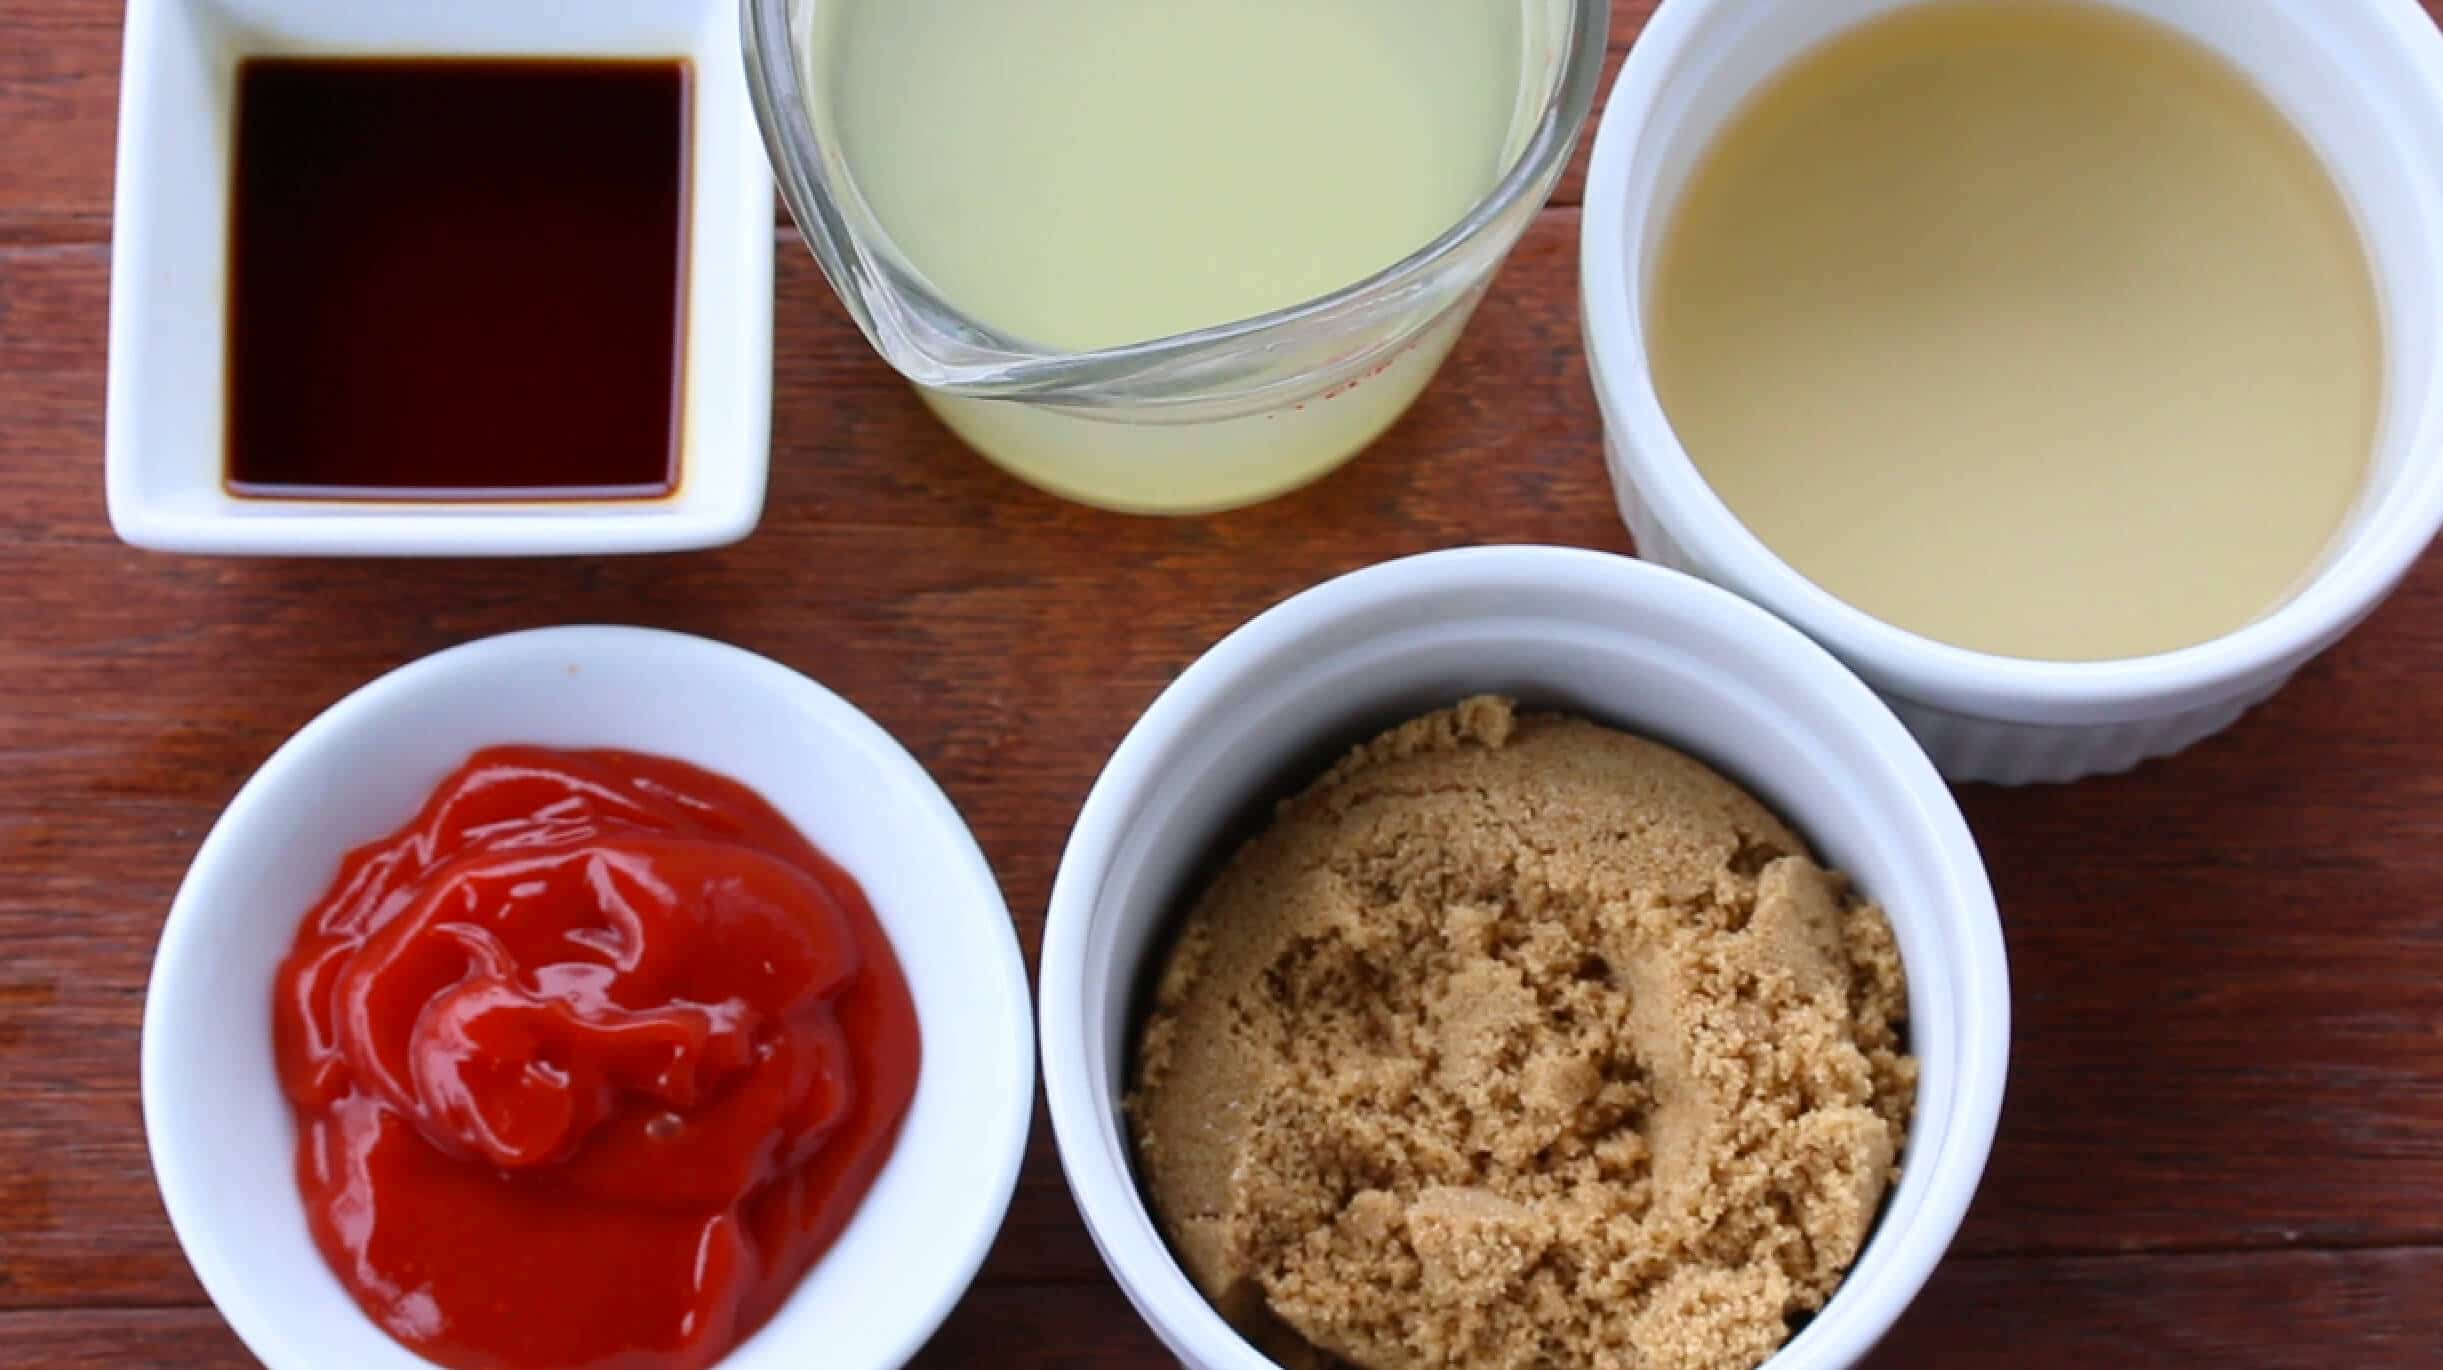 chinese asian sweet sour sauce recipe best easy fast quick pineapple juice takeout restaurant